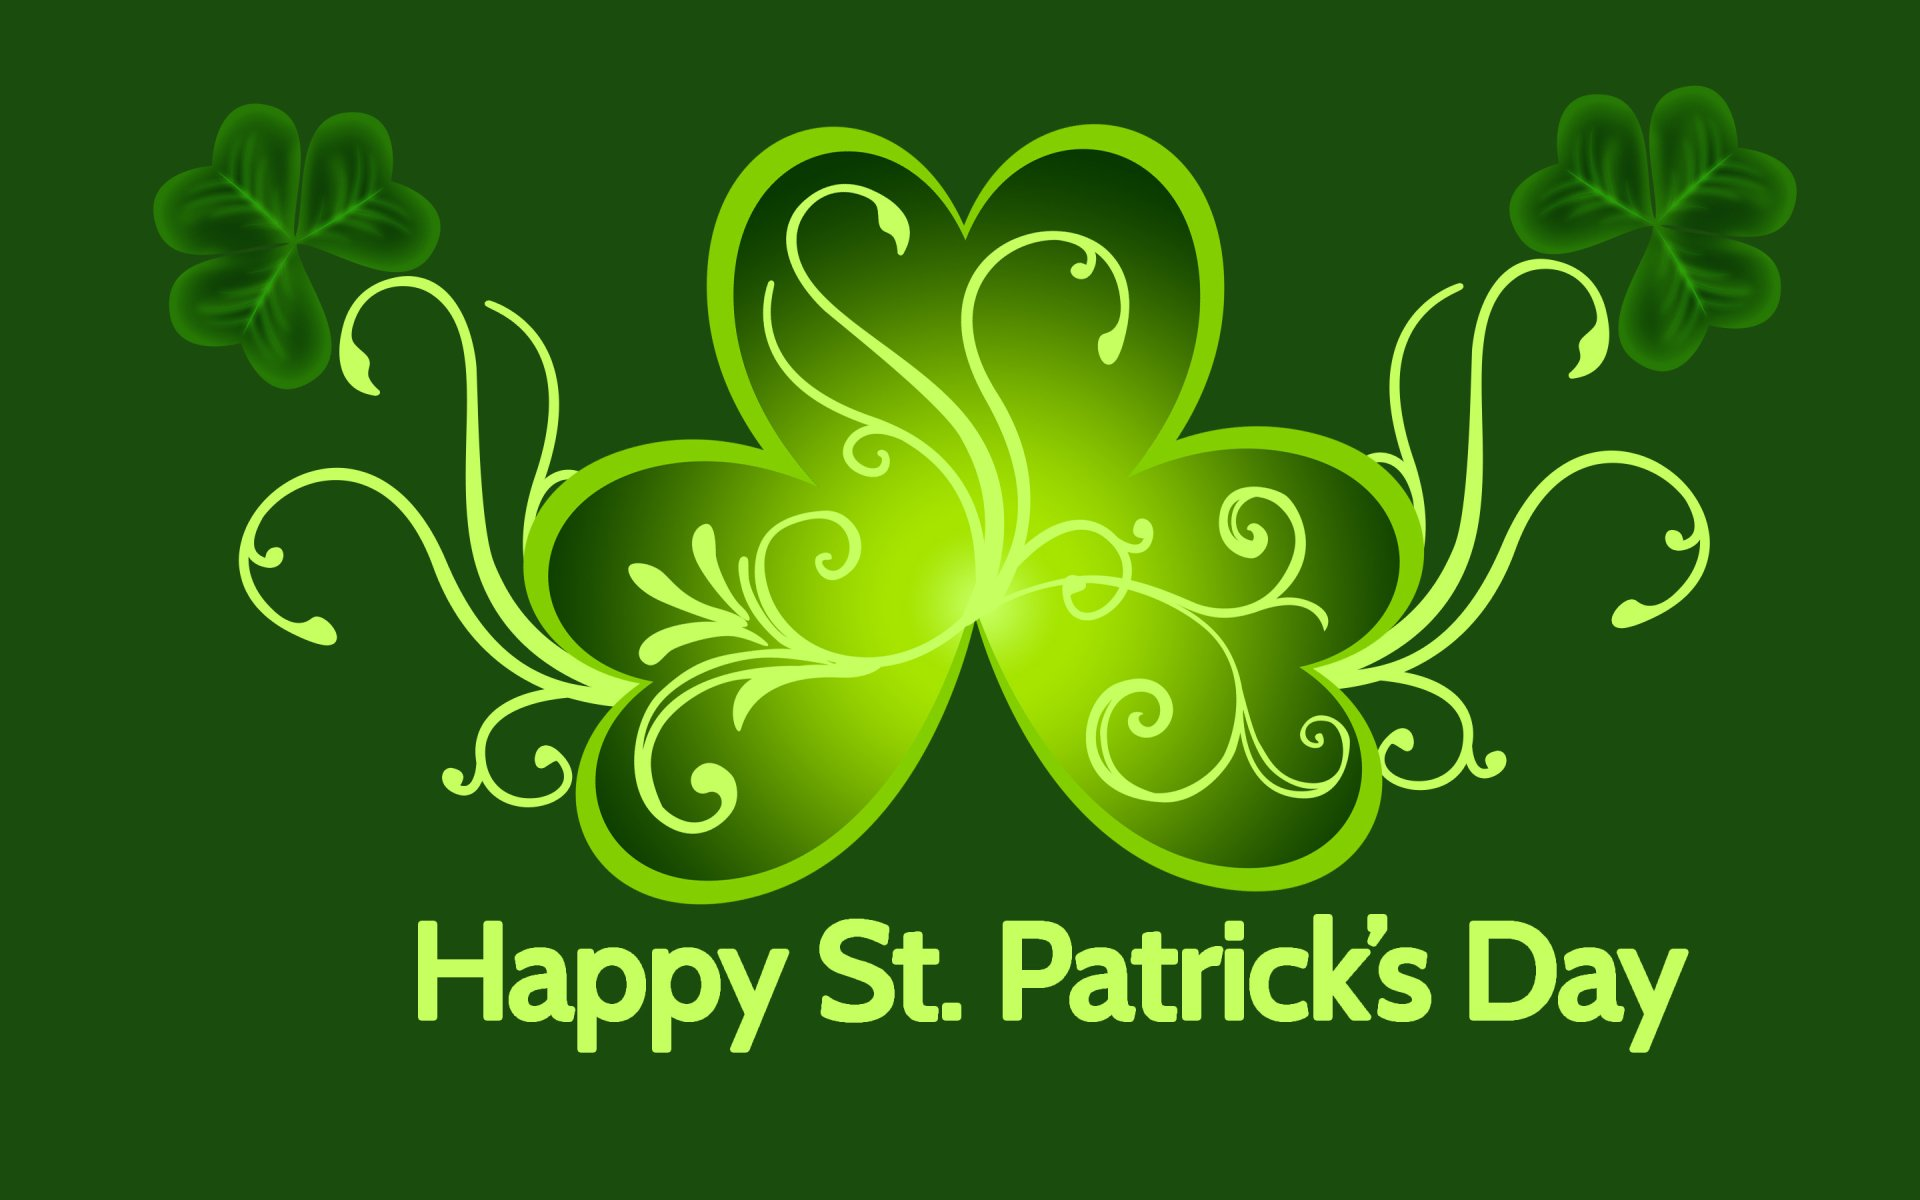 Holiday - St. Patrick's Day  Green Clover Wallpaper